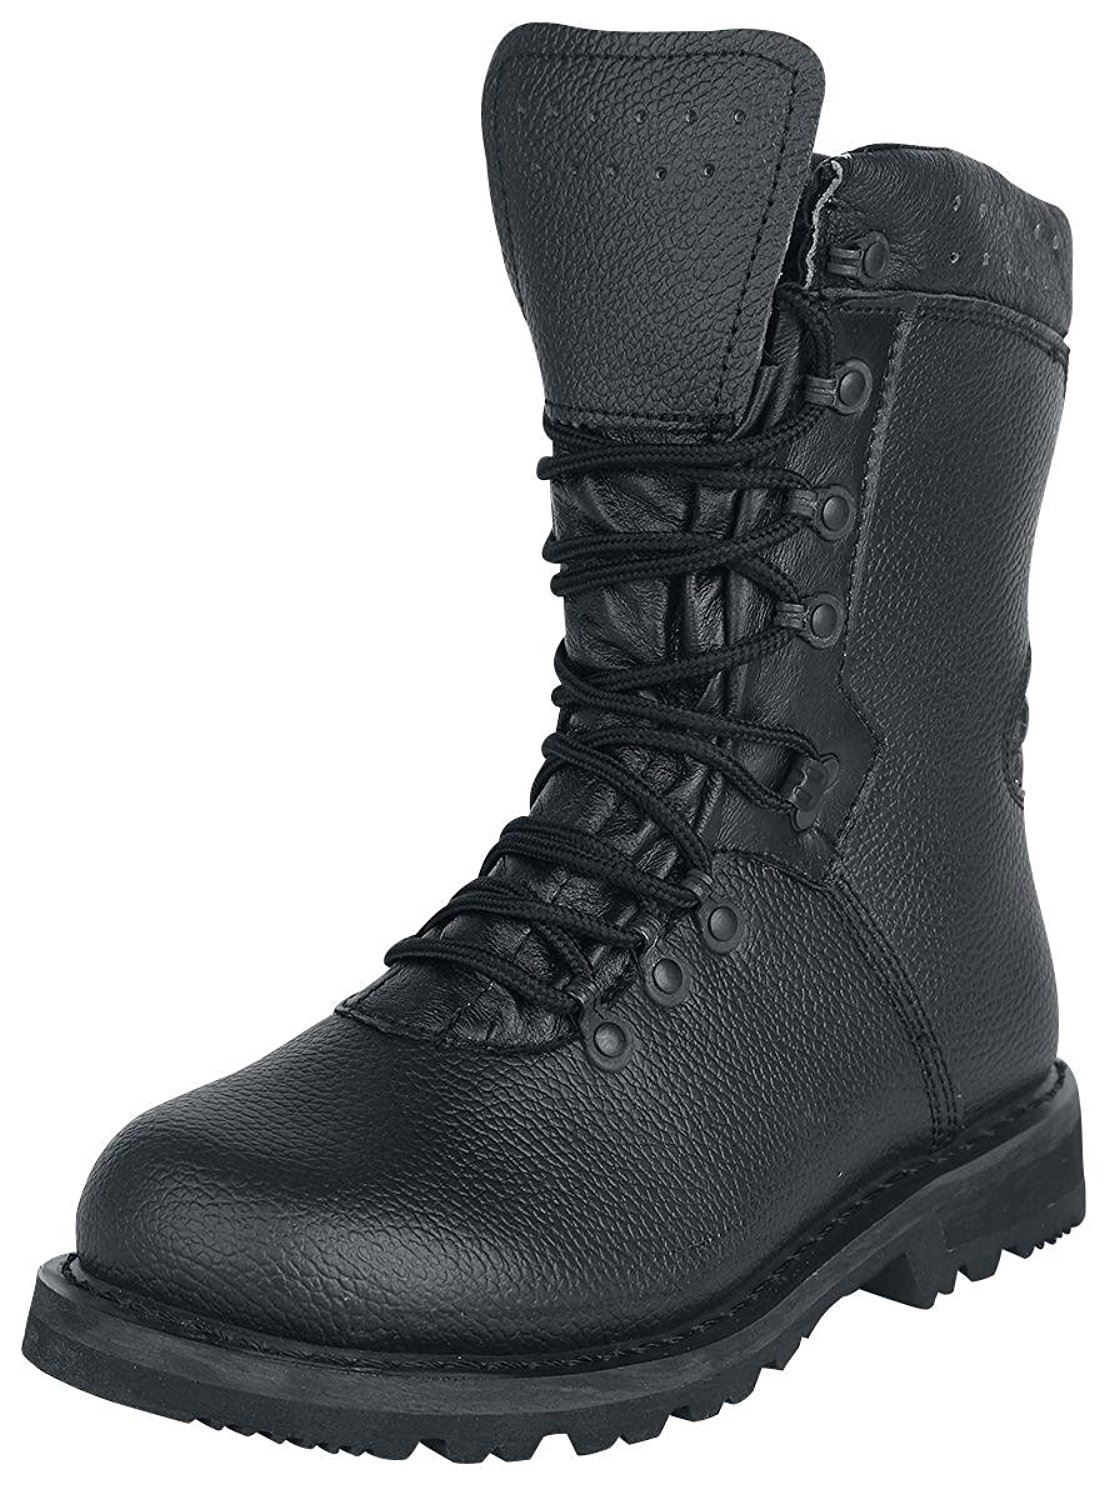 BRANDIT BW GERMAN ARMY LEATHER MILITARY COMBAT BOOTS MODEL